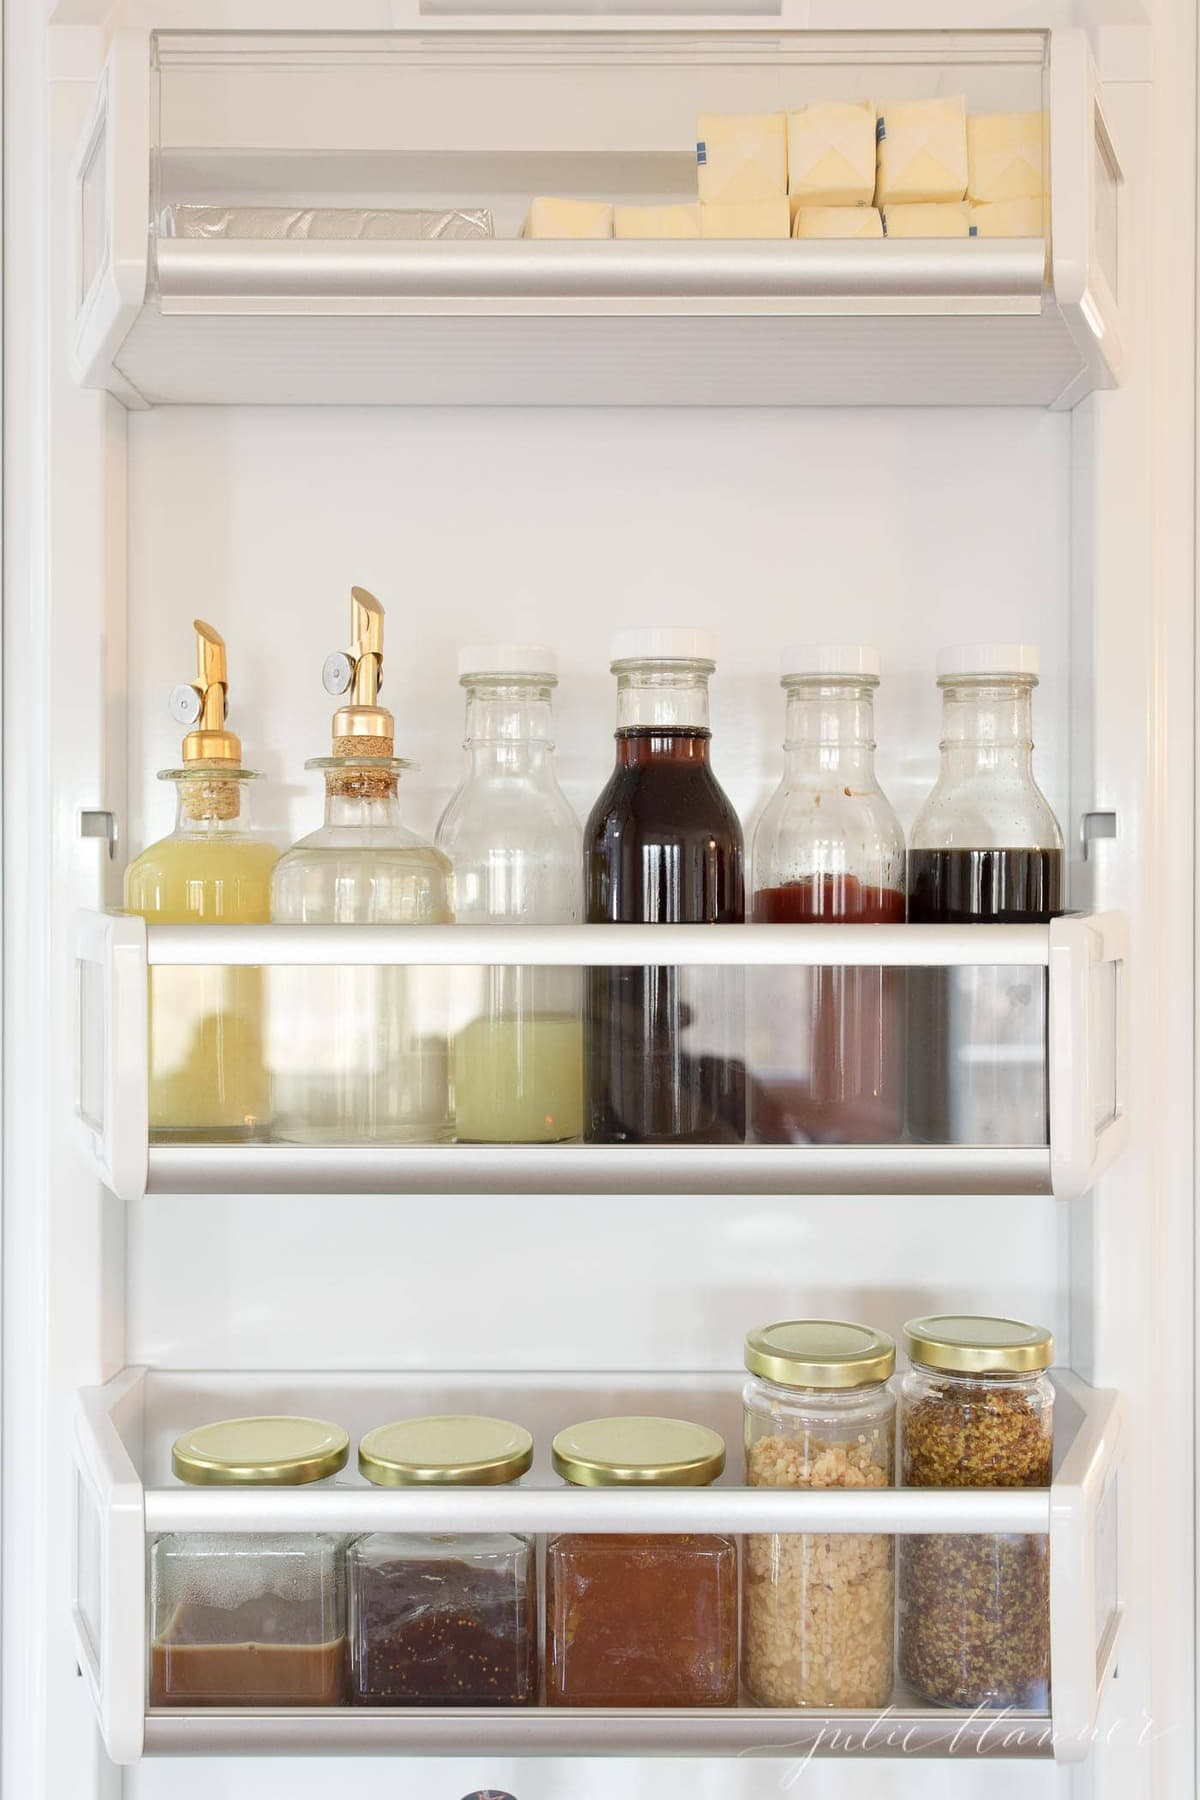 refrigerator organization with clear jars inside a fridge door.